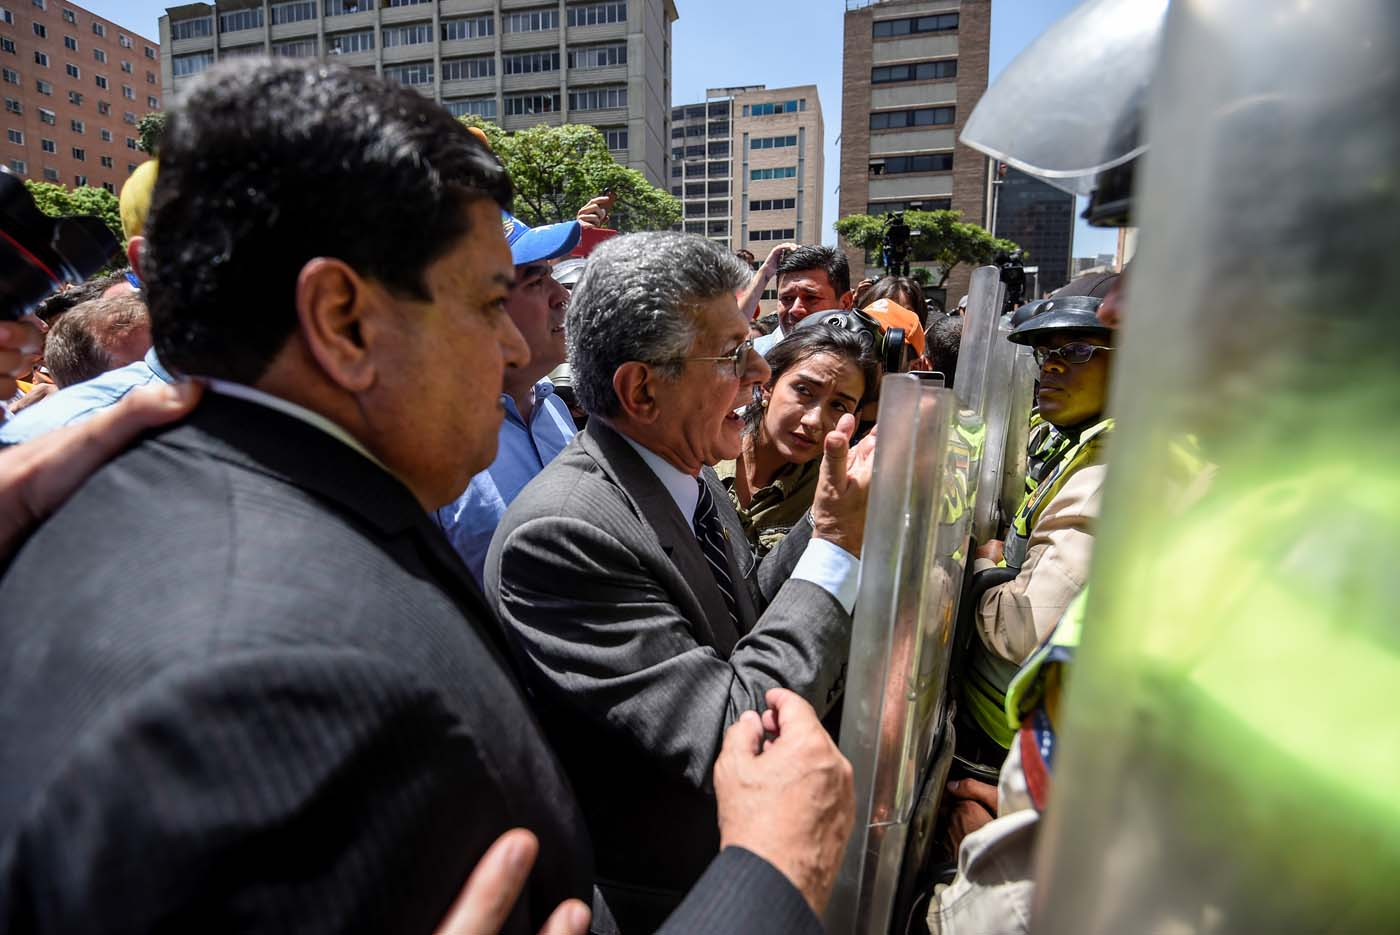 Former President of the Venezuelan National Assembly Henry Ramos Allup(C) speaks with riot police officers during a protest against Nicolas Maduro